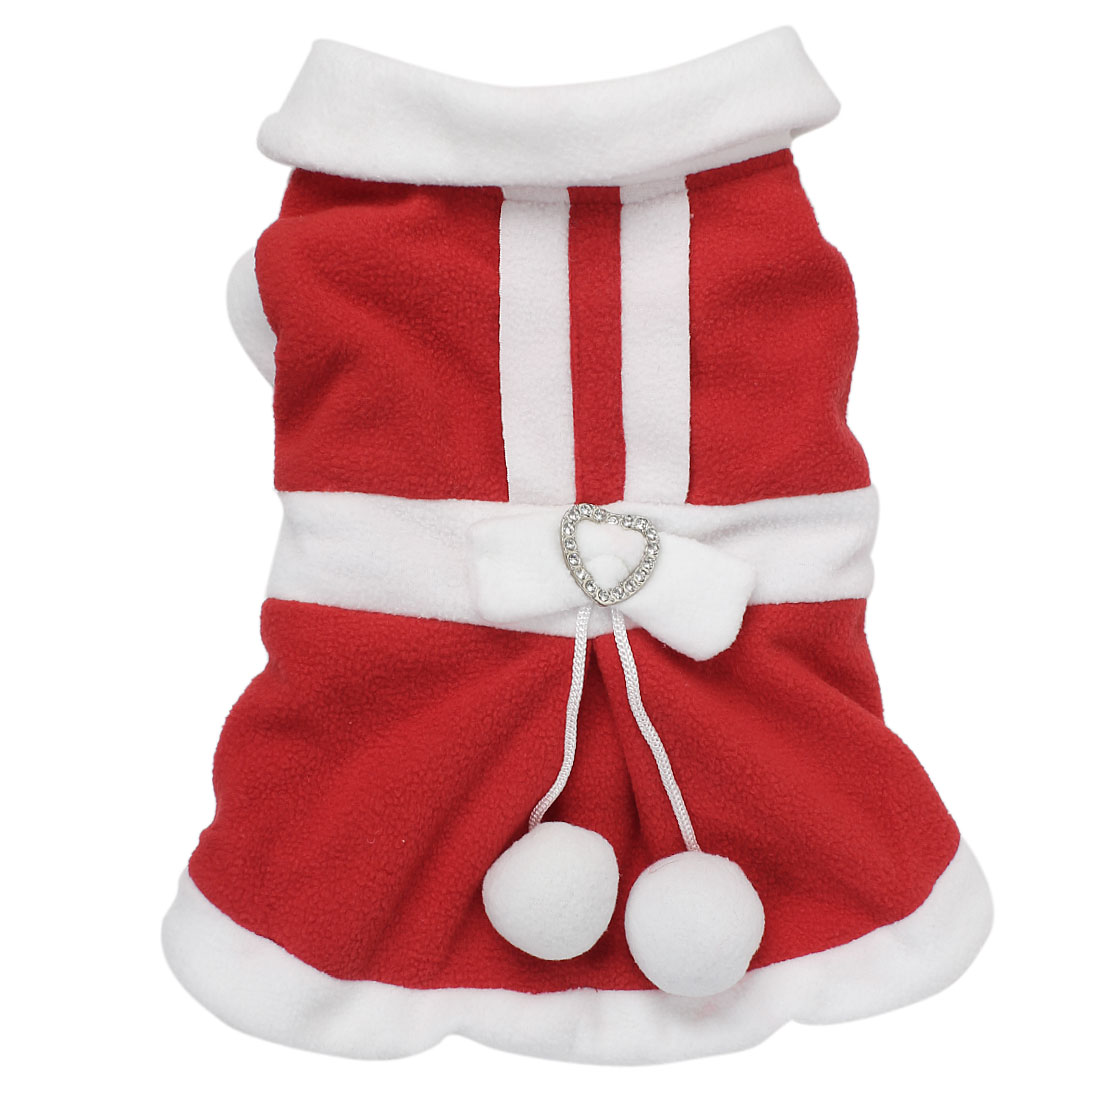 Pet Puppy Dog Bowknot Merry Christmas Warm Coat Jacket Costume Red Size L